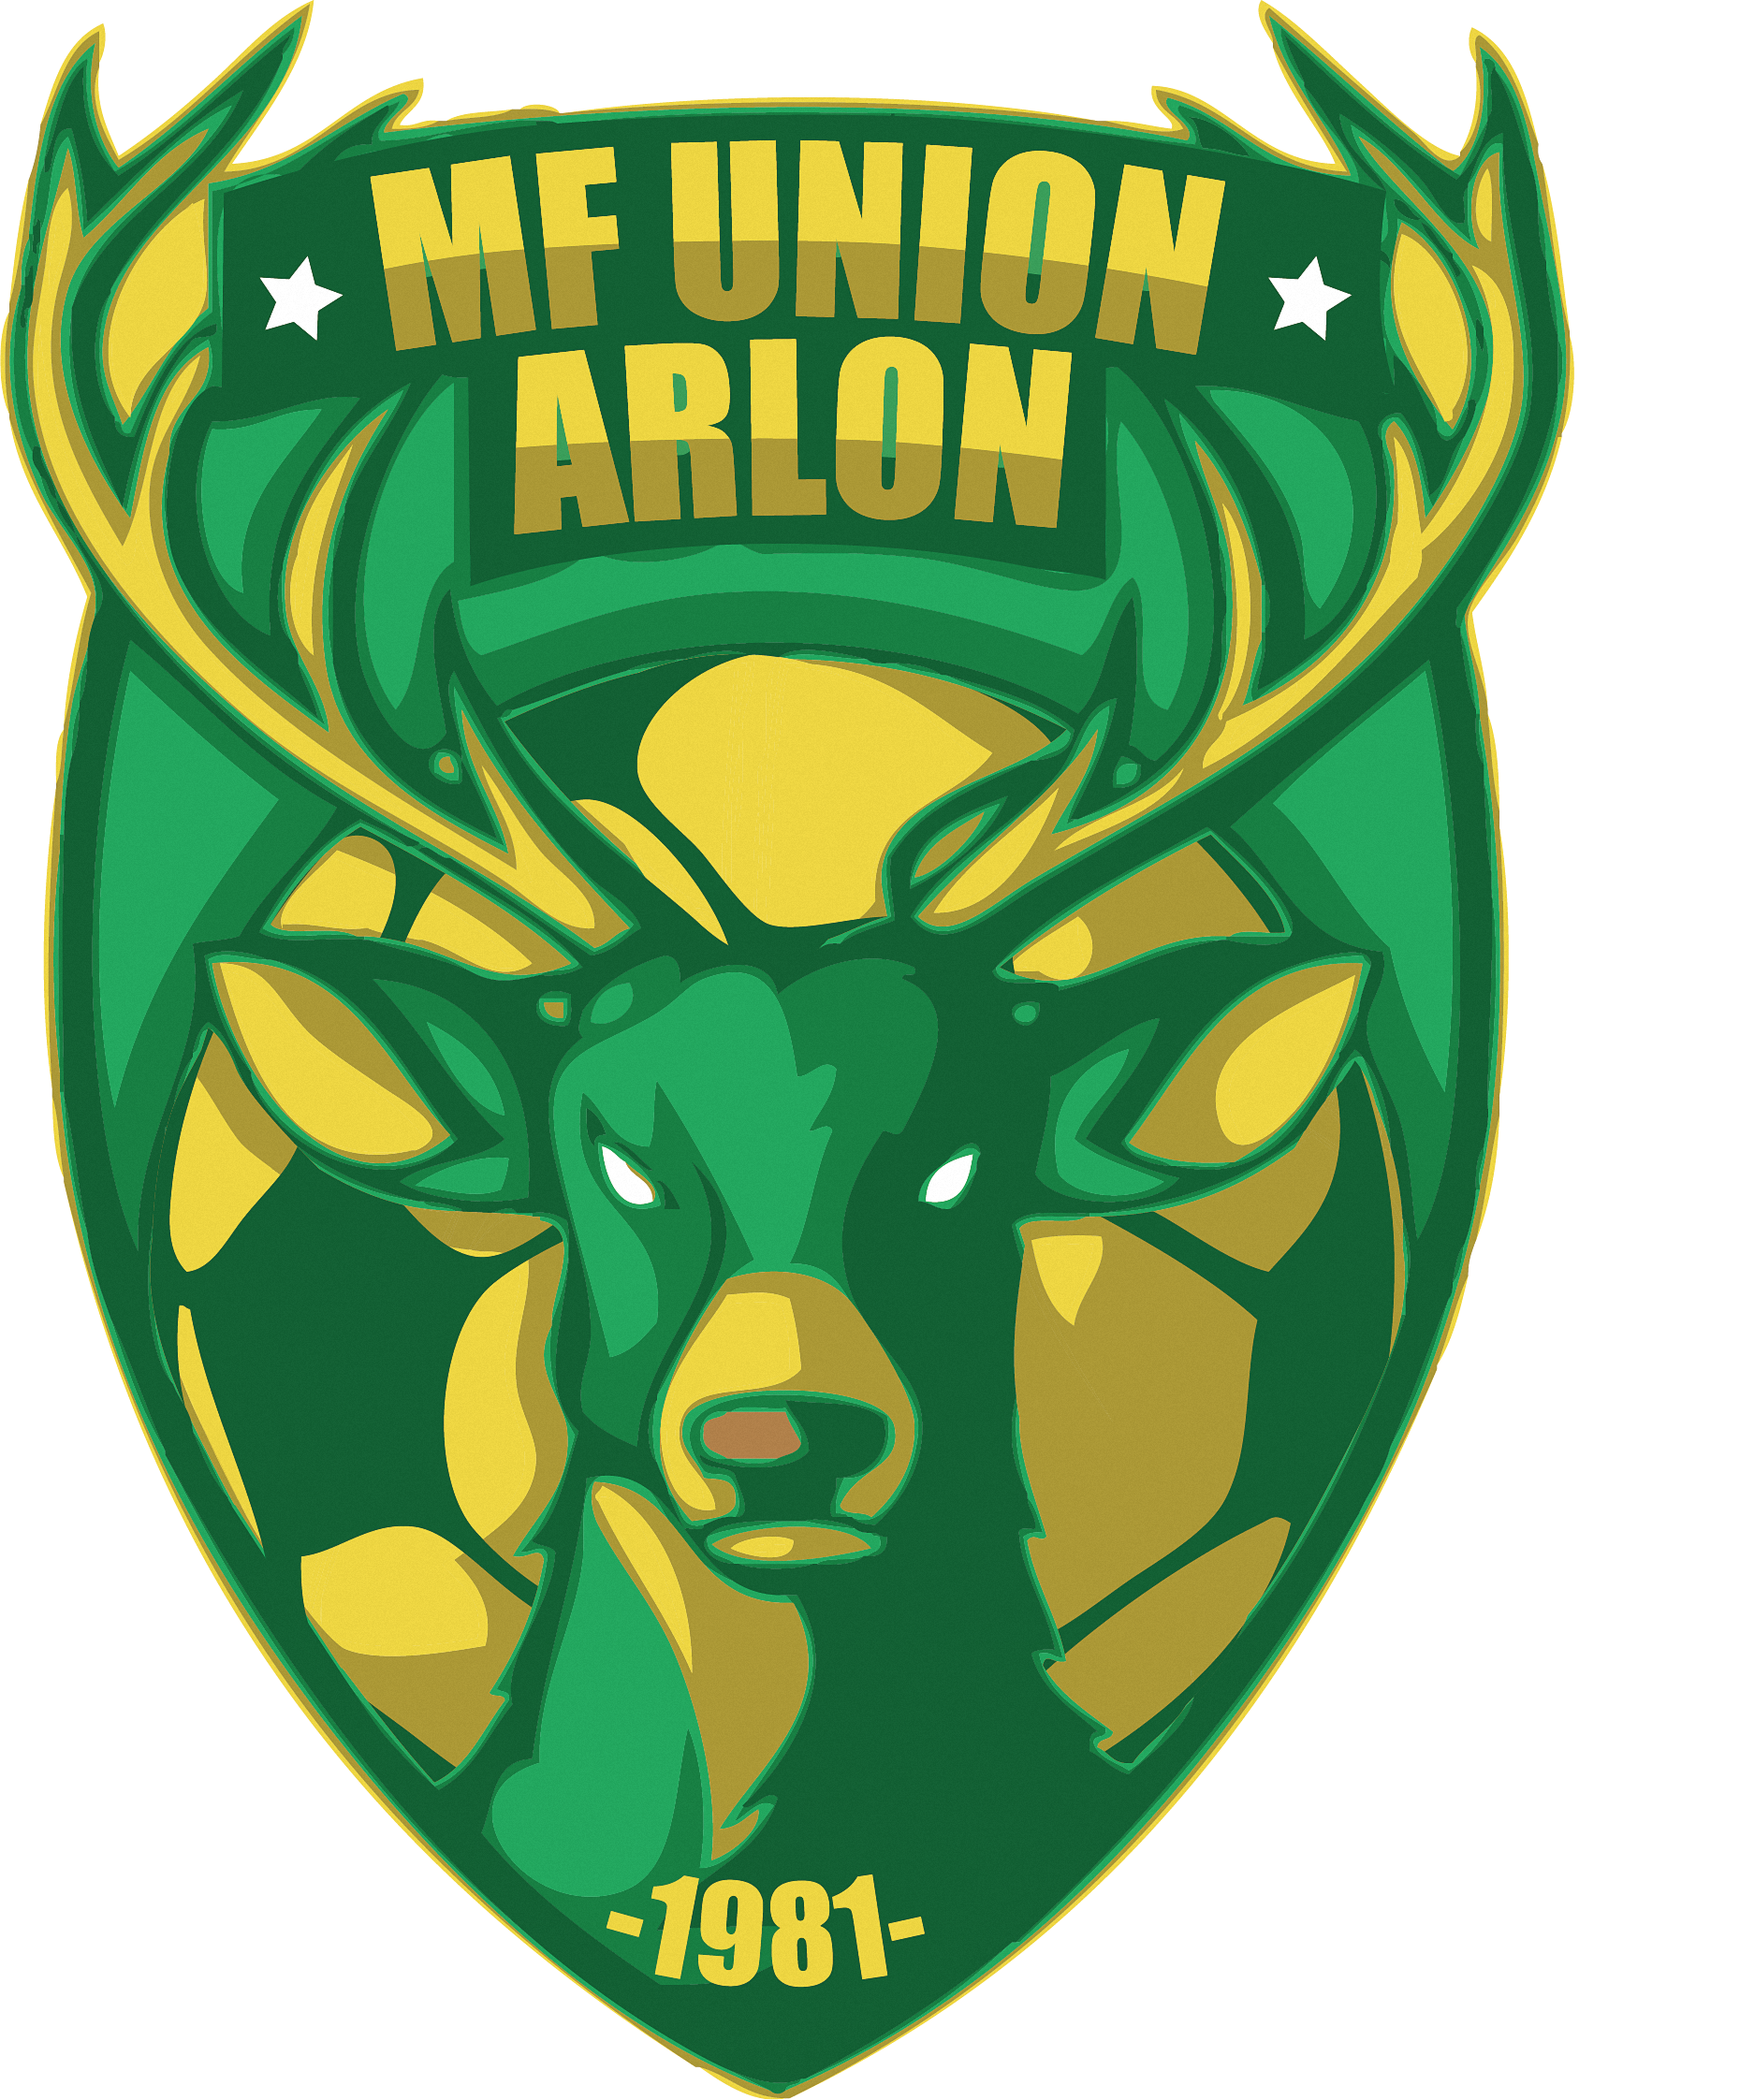 MF Union Arlon